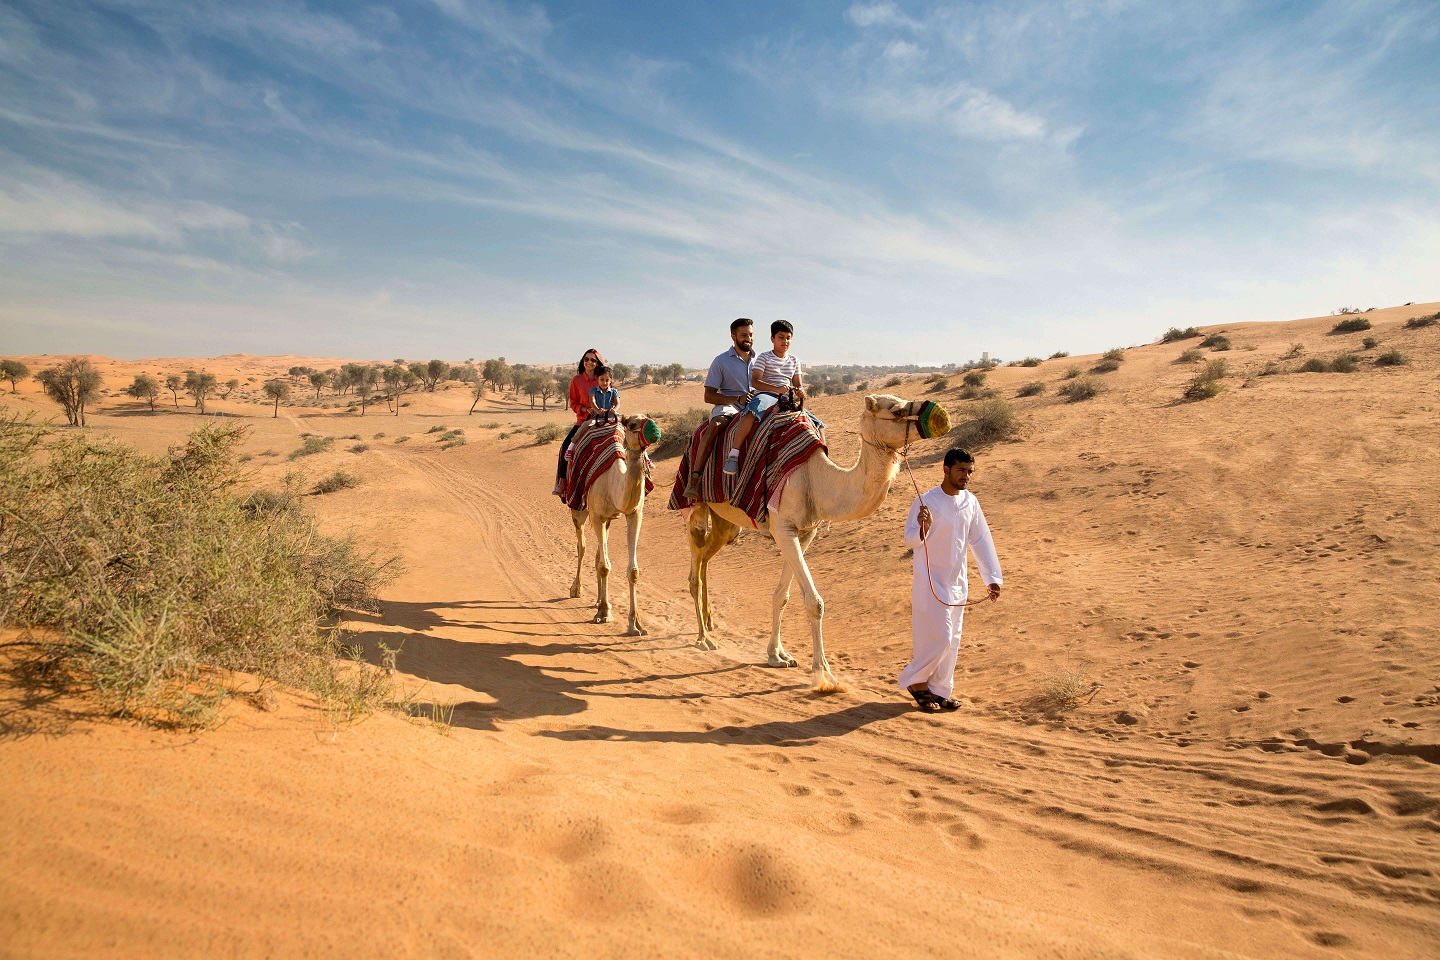 Ras-Al-Khaimah-Destination-Camel-Riding